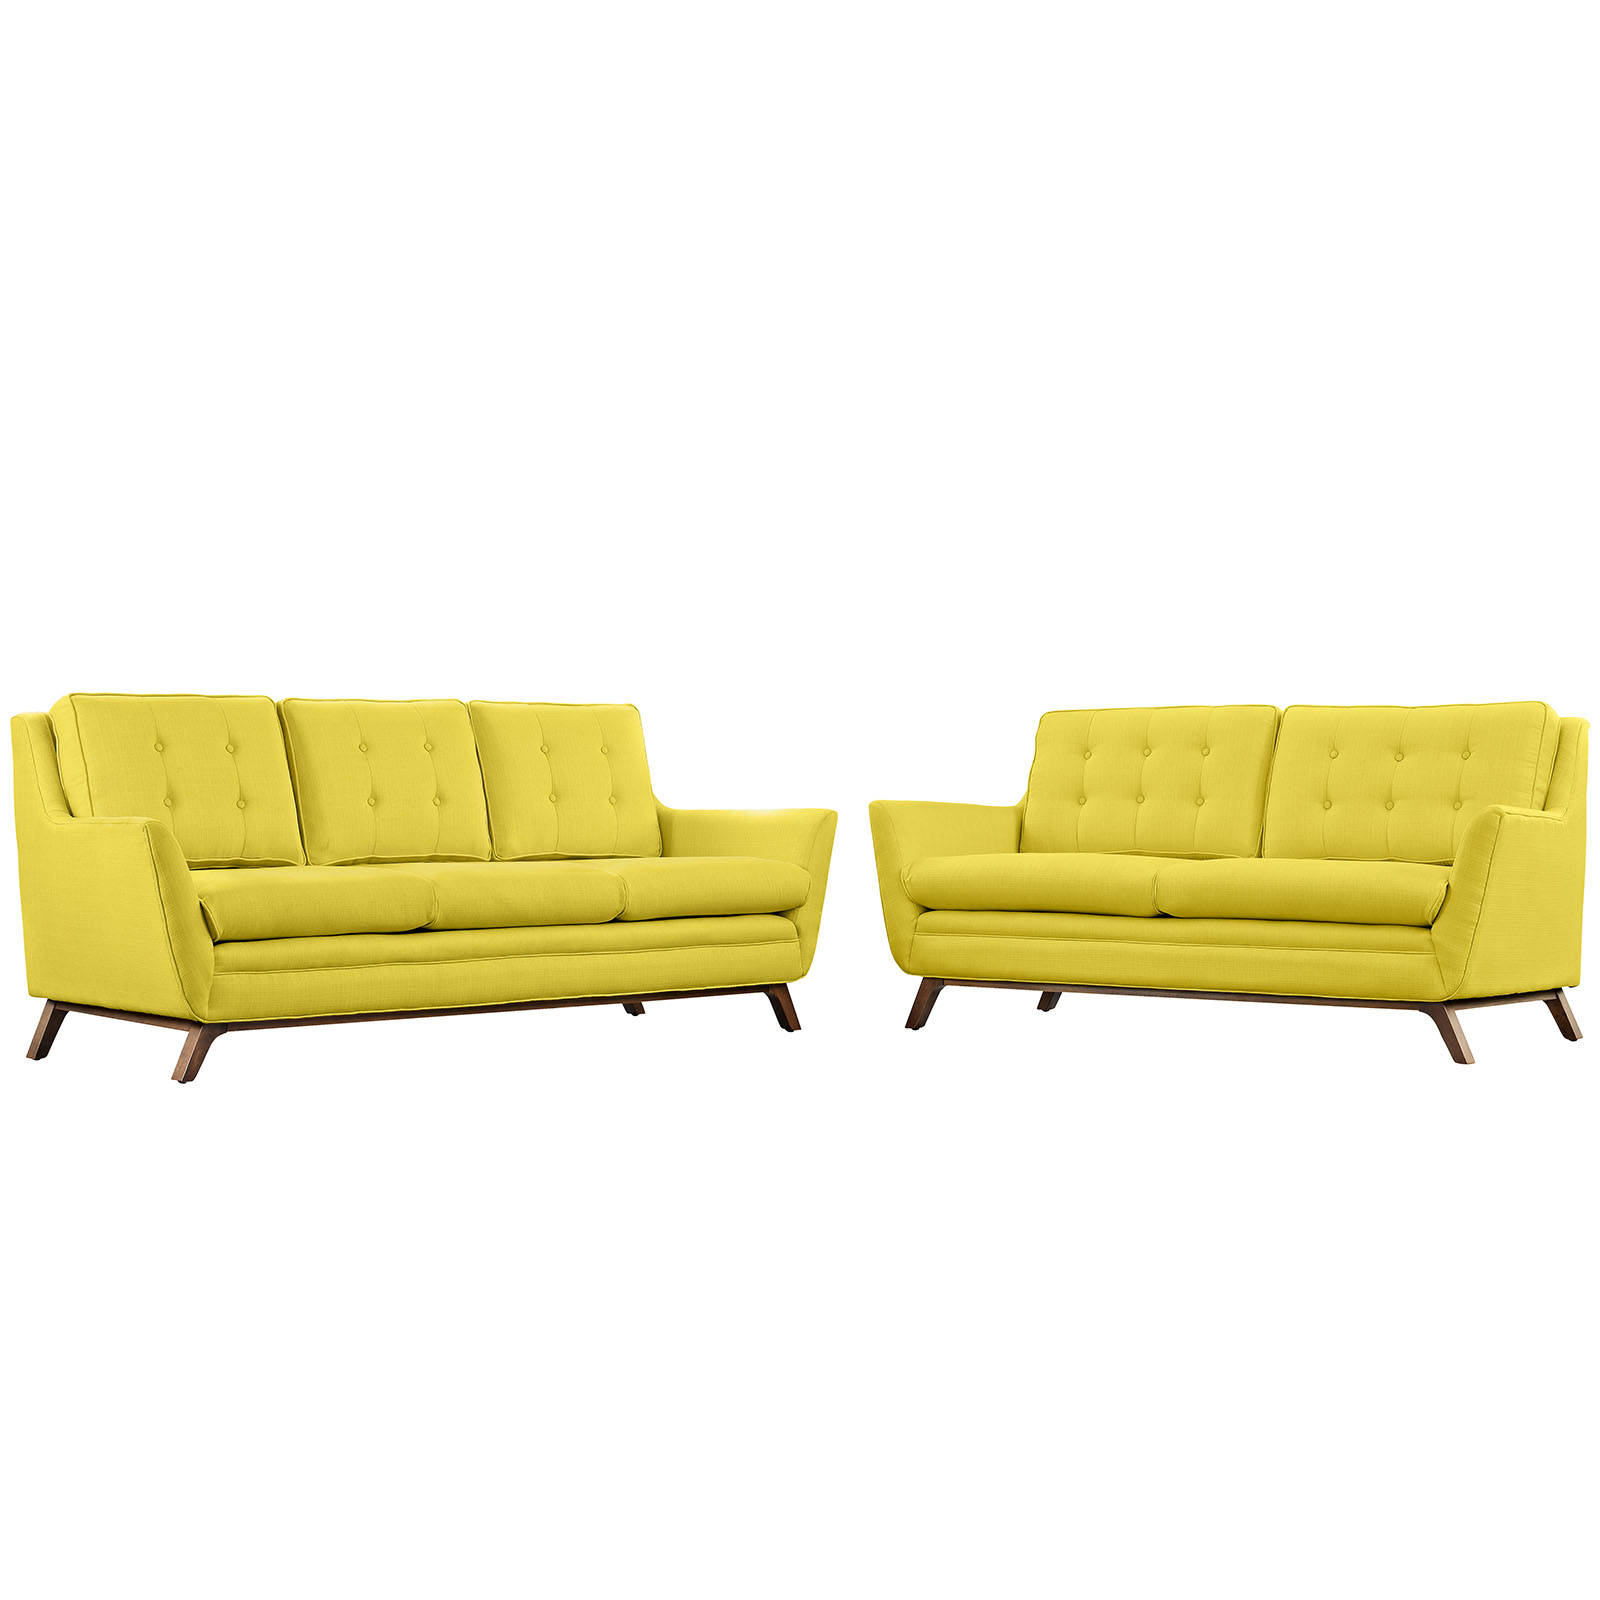 Modway Furniture Beguile Sunny 2pc Living Room Set | The Classy Home